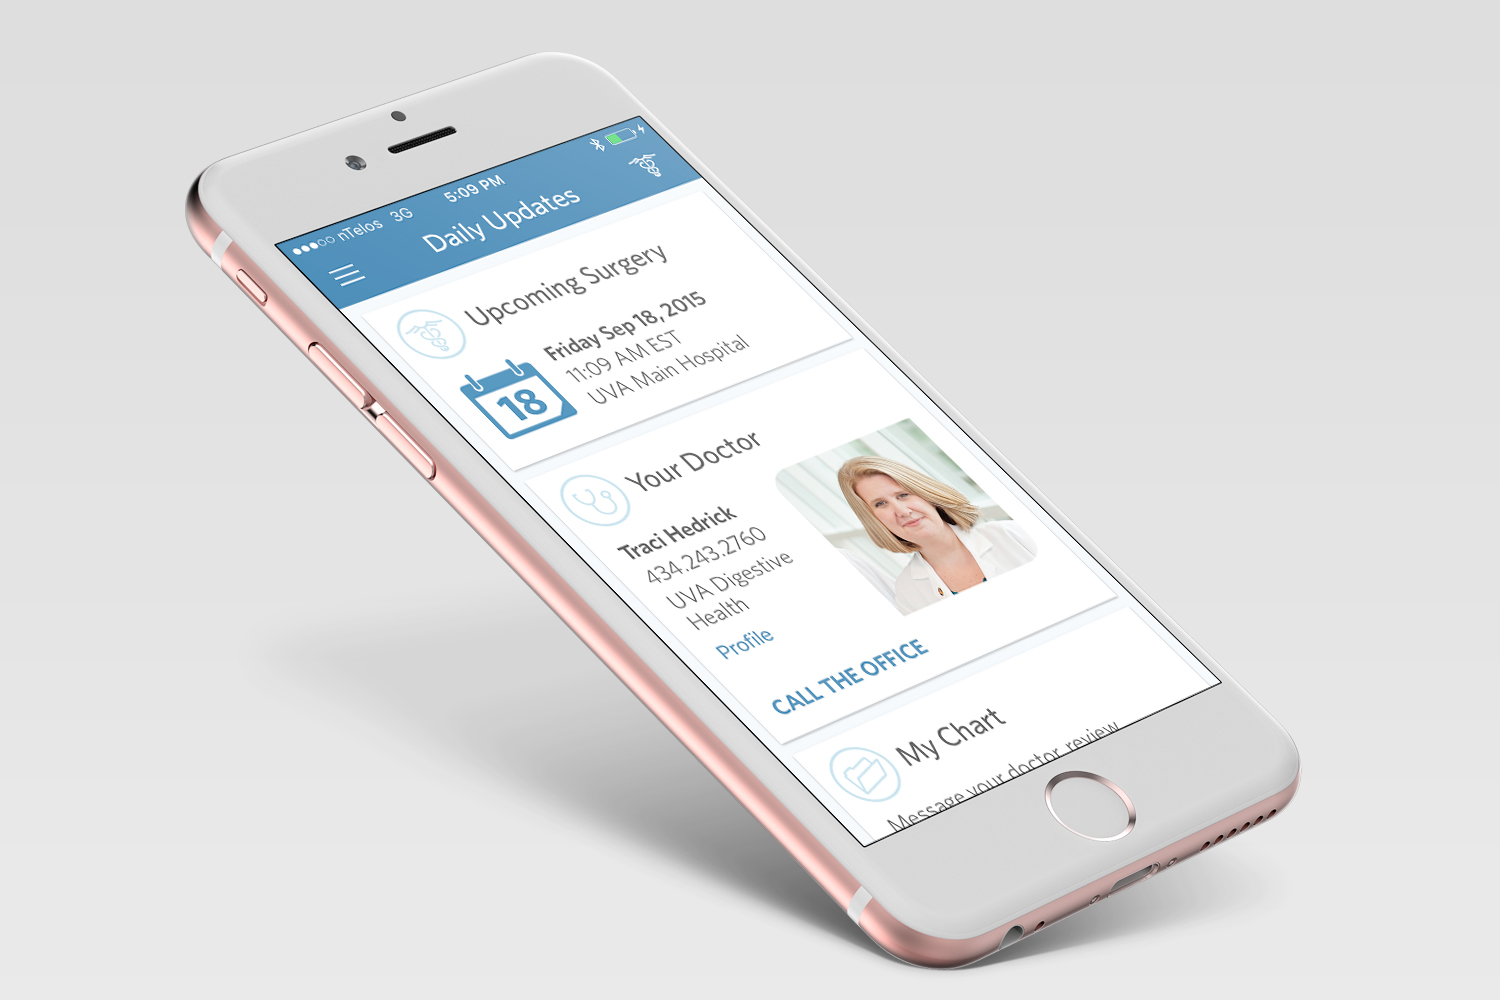 A new smartphone app has helped reduce complications from elective colorectal surgery.